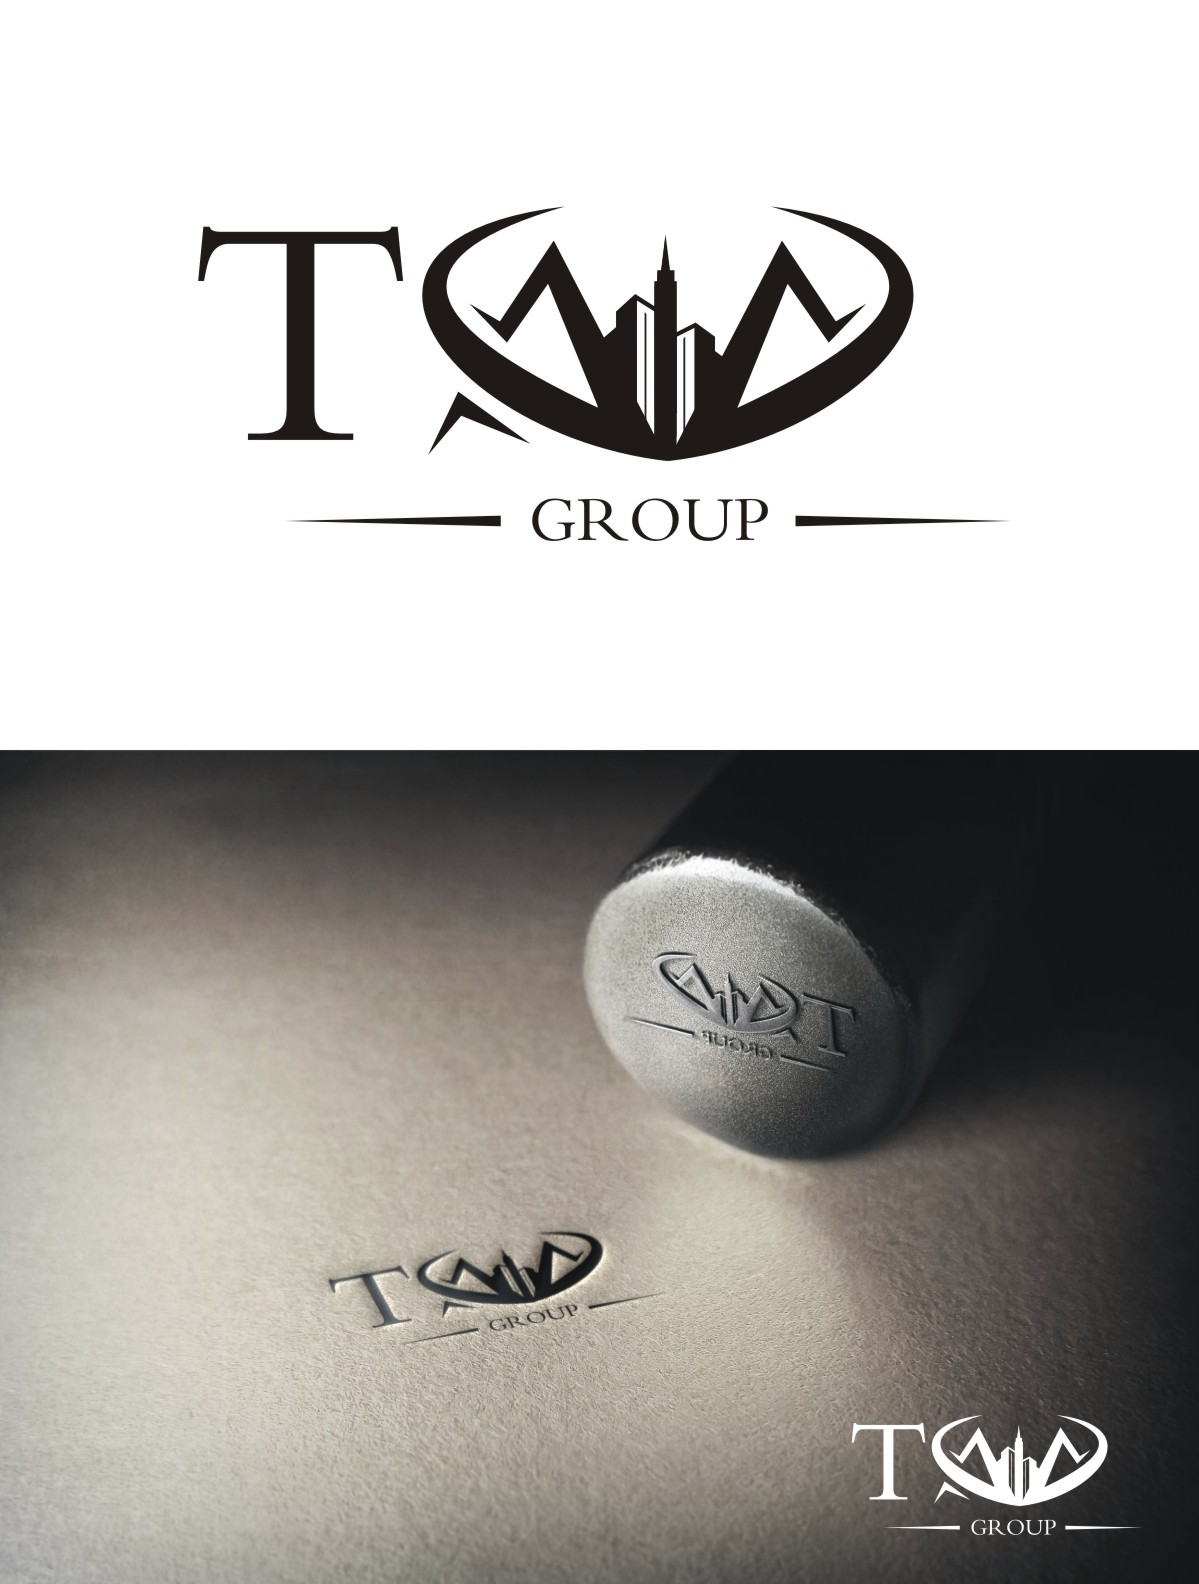 Logo Design by Spider Graphics - Entry No. 267 in the Logo Design Contest Creative Logo Design for Tava Group.